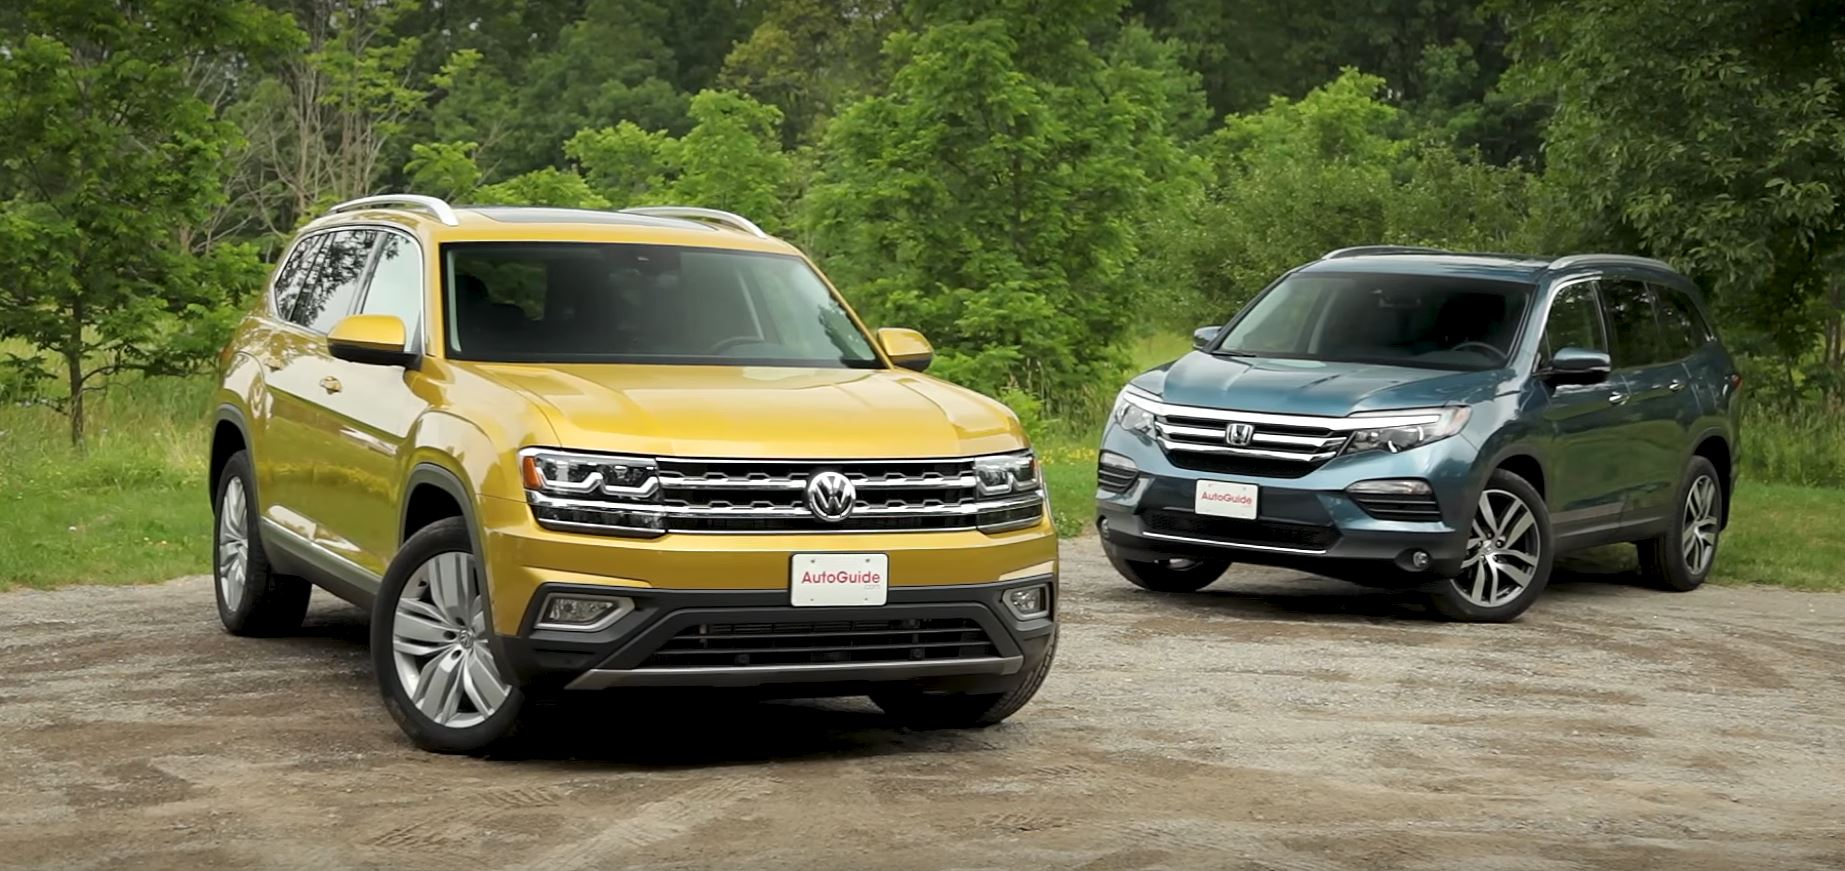 2018 volkswagen atlas vs honda pilot review doesn 39 t fit for Honda pilot 2018 review